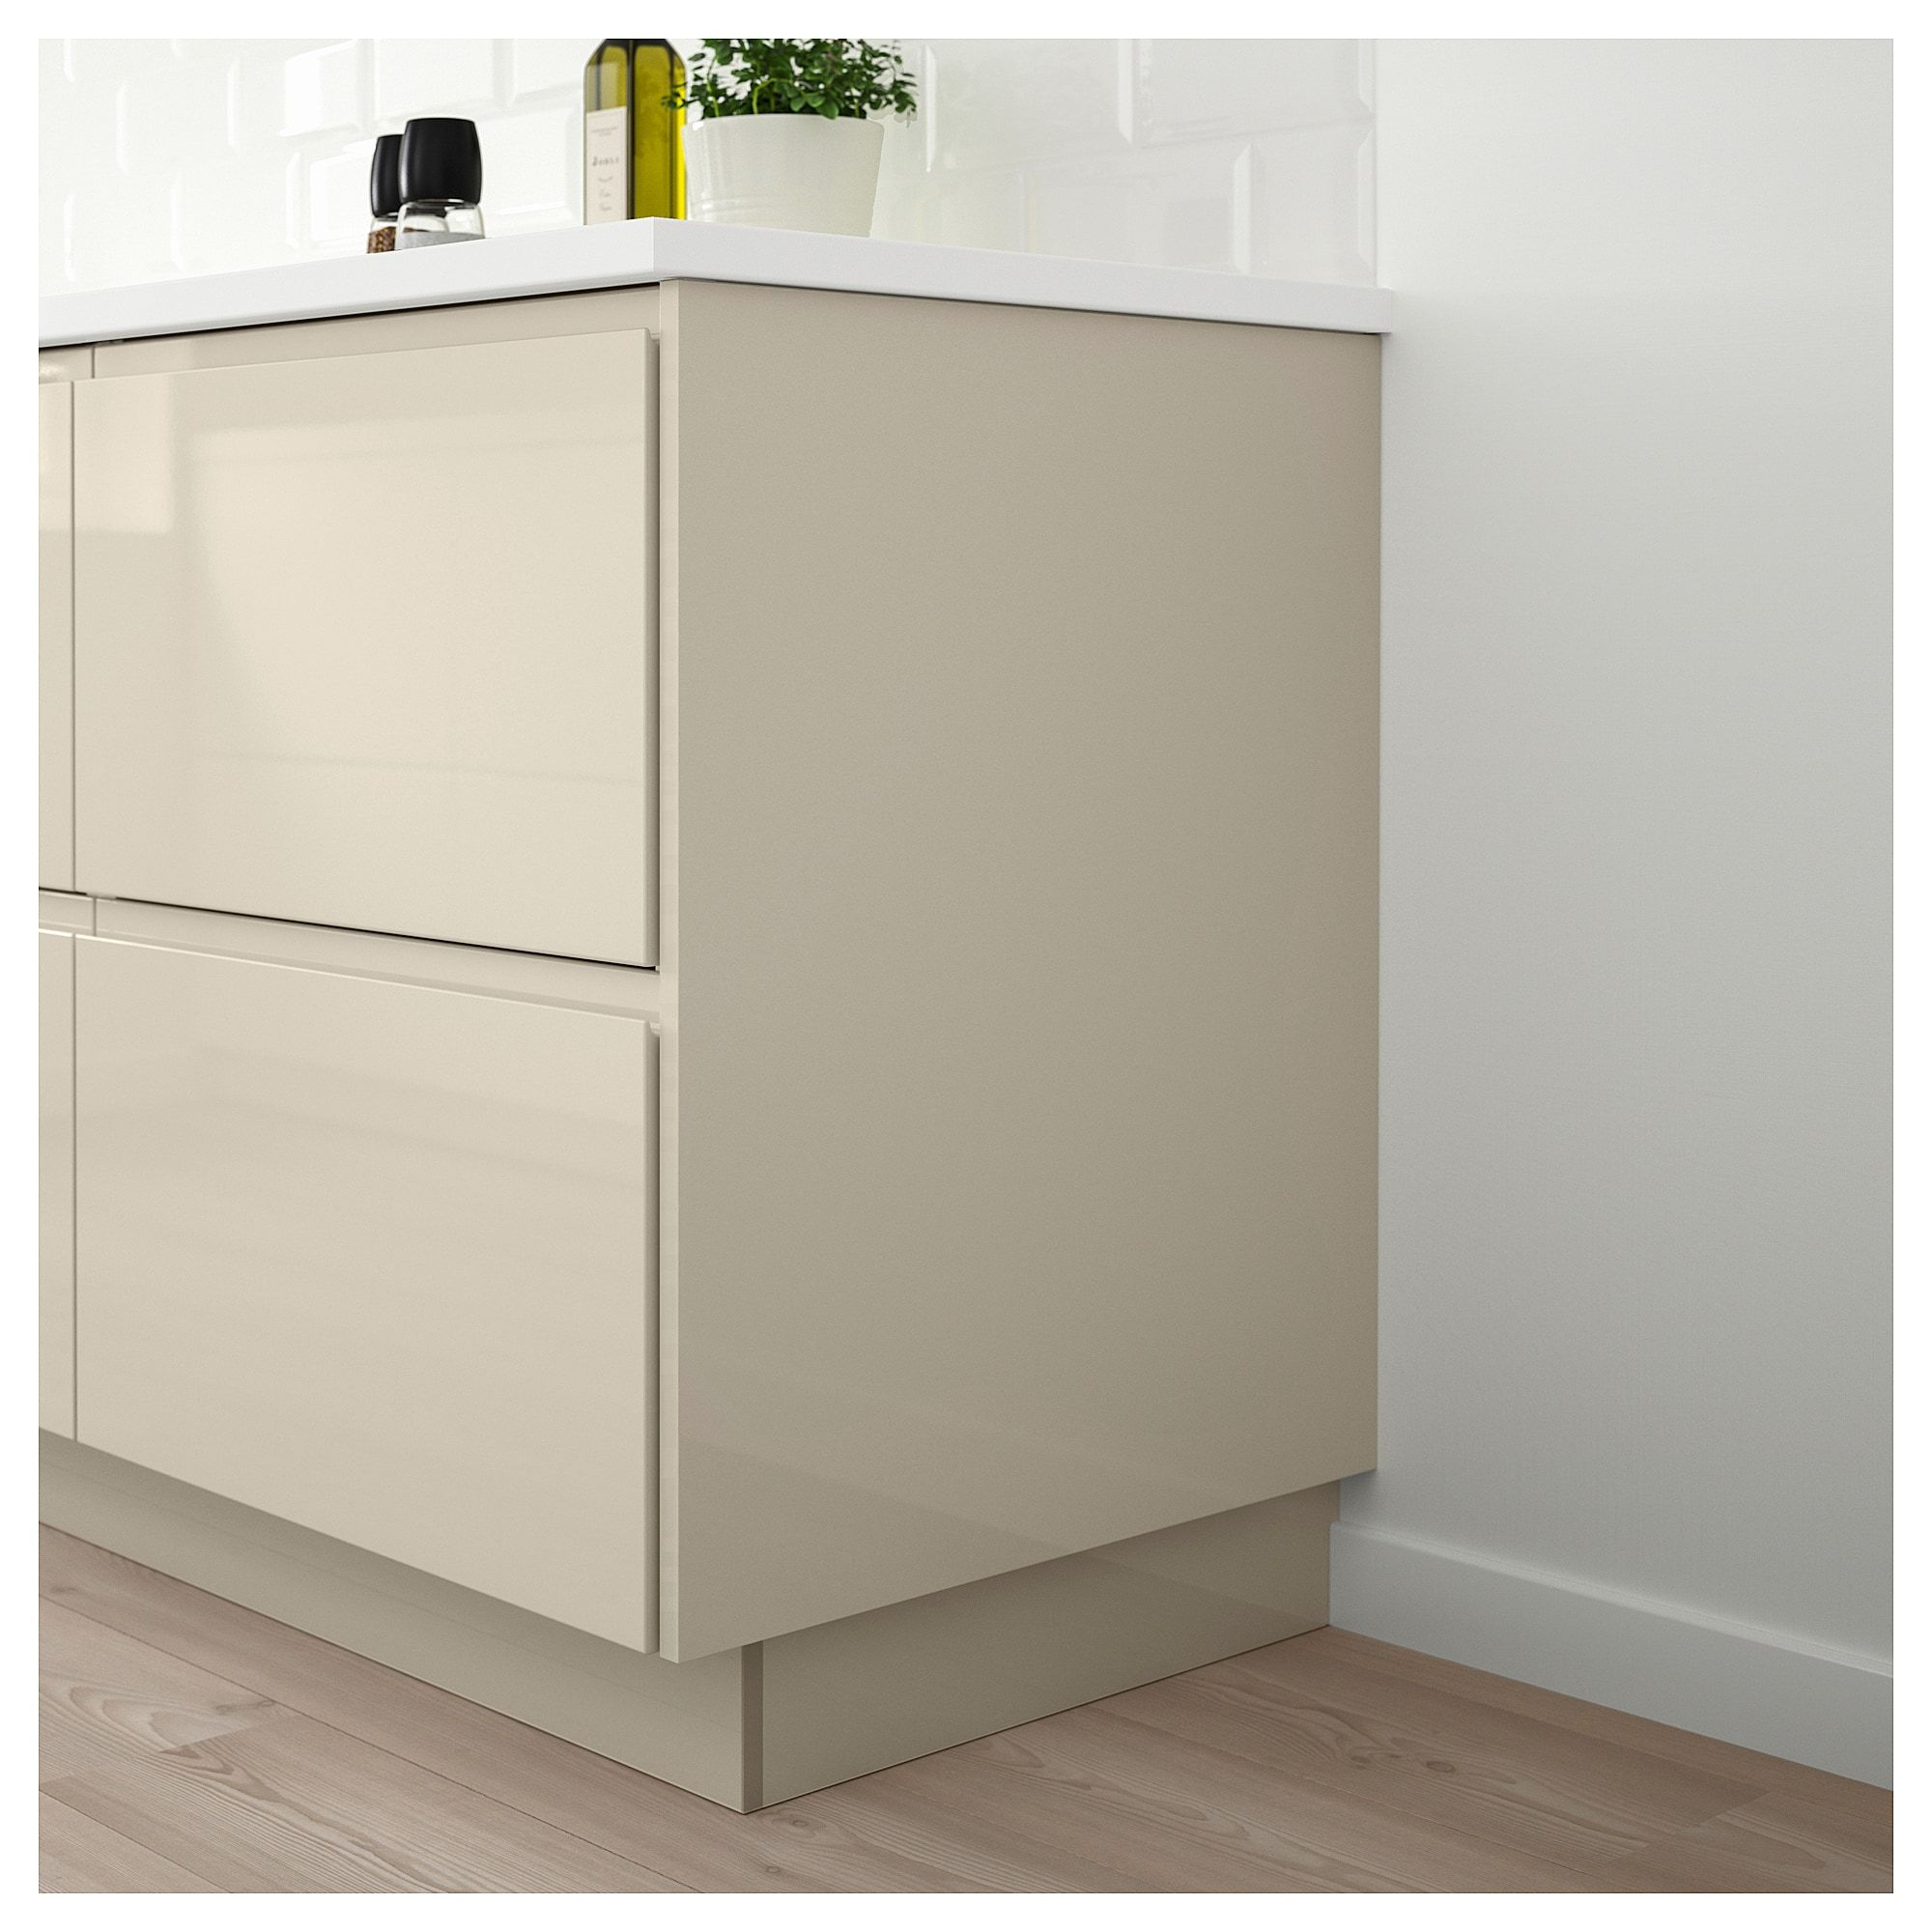 Cuisine Ikea Beige Voxtorp Cover Panel High Gloss Light Beige Products Light